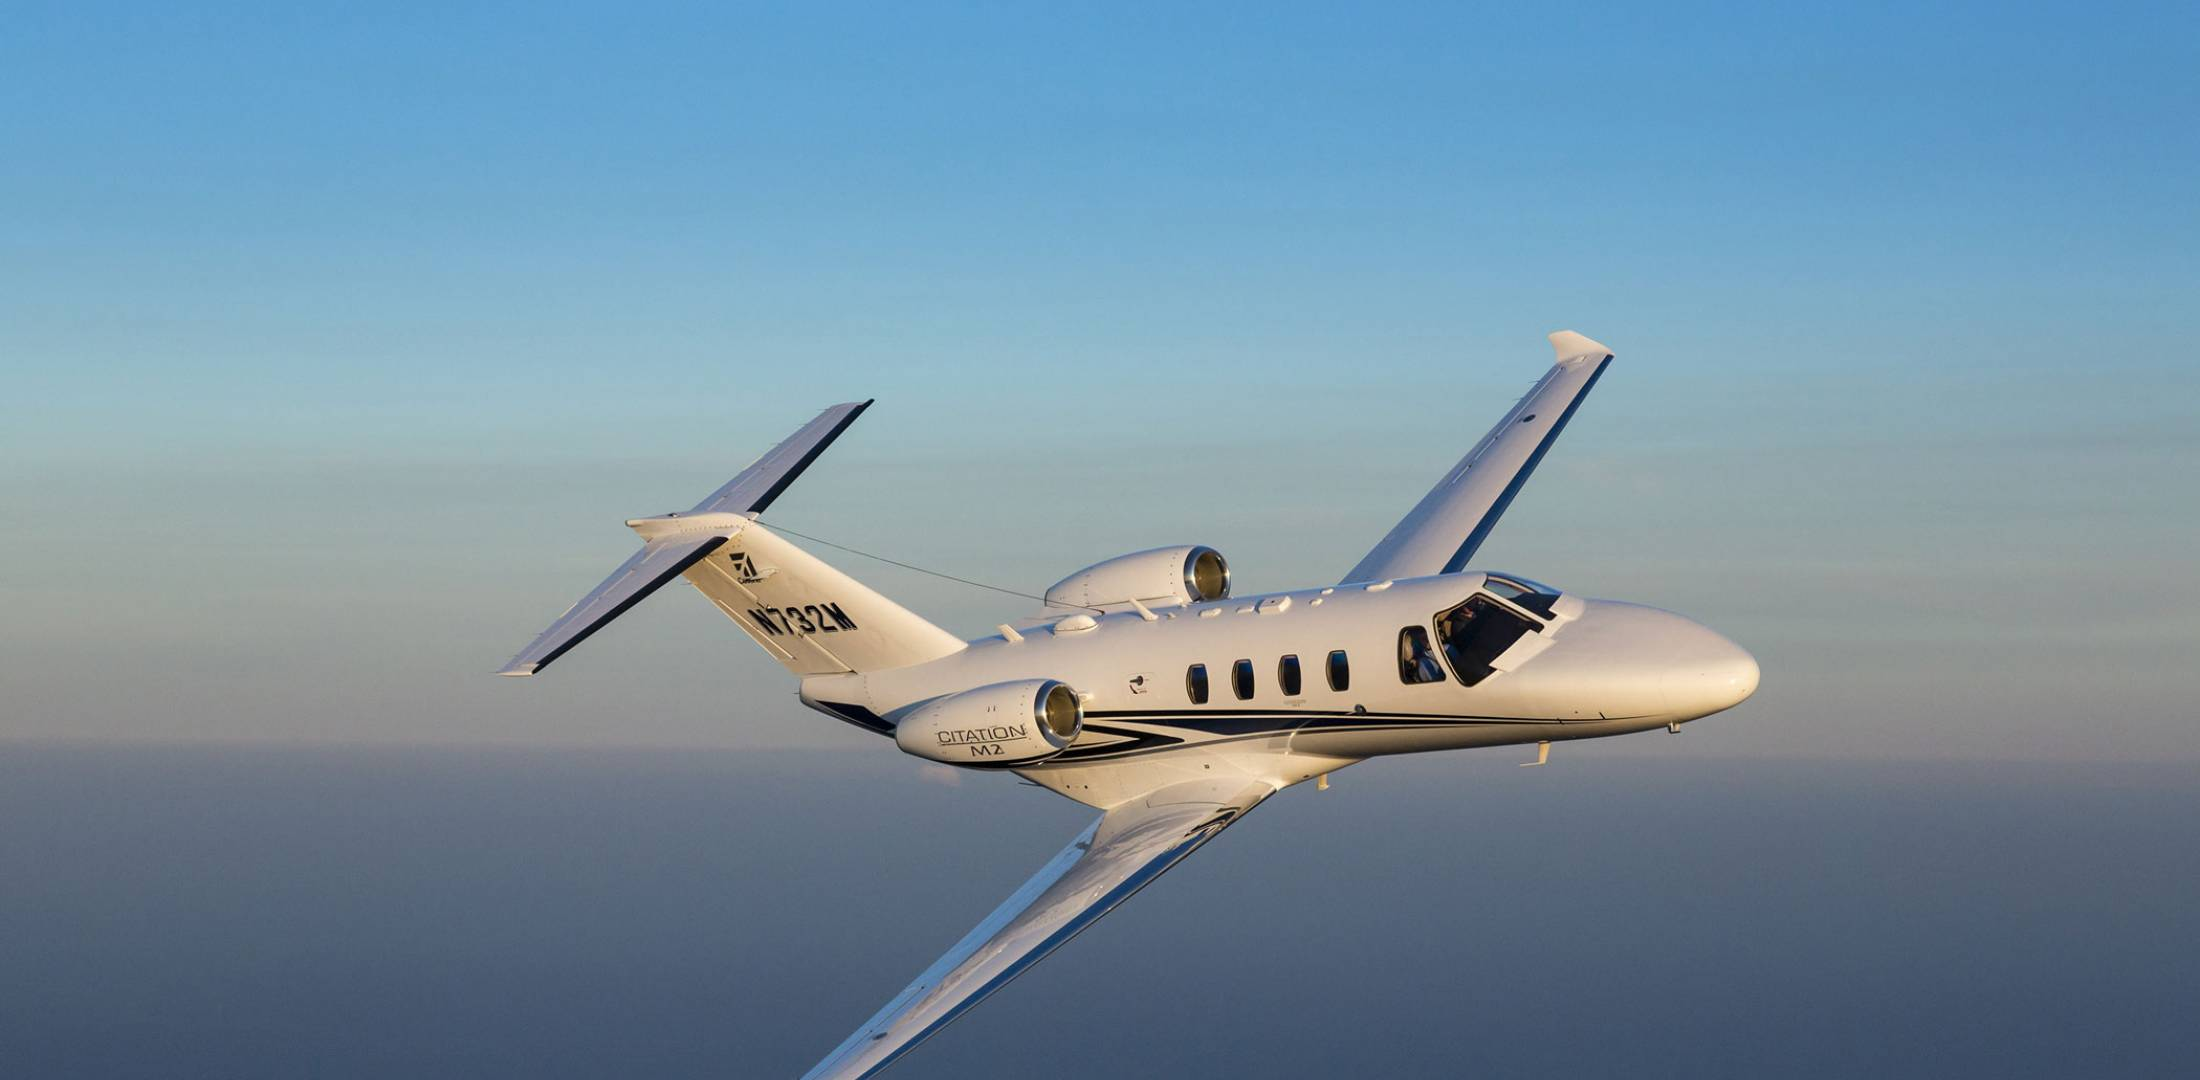 Citation M2 in flight